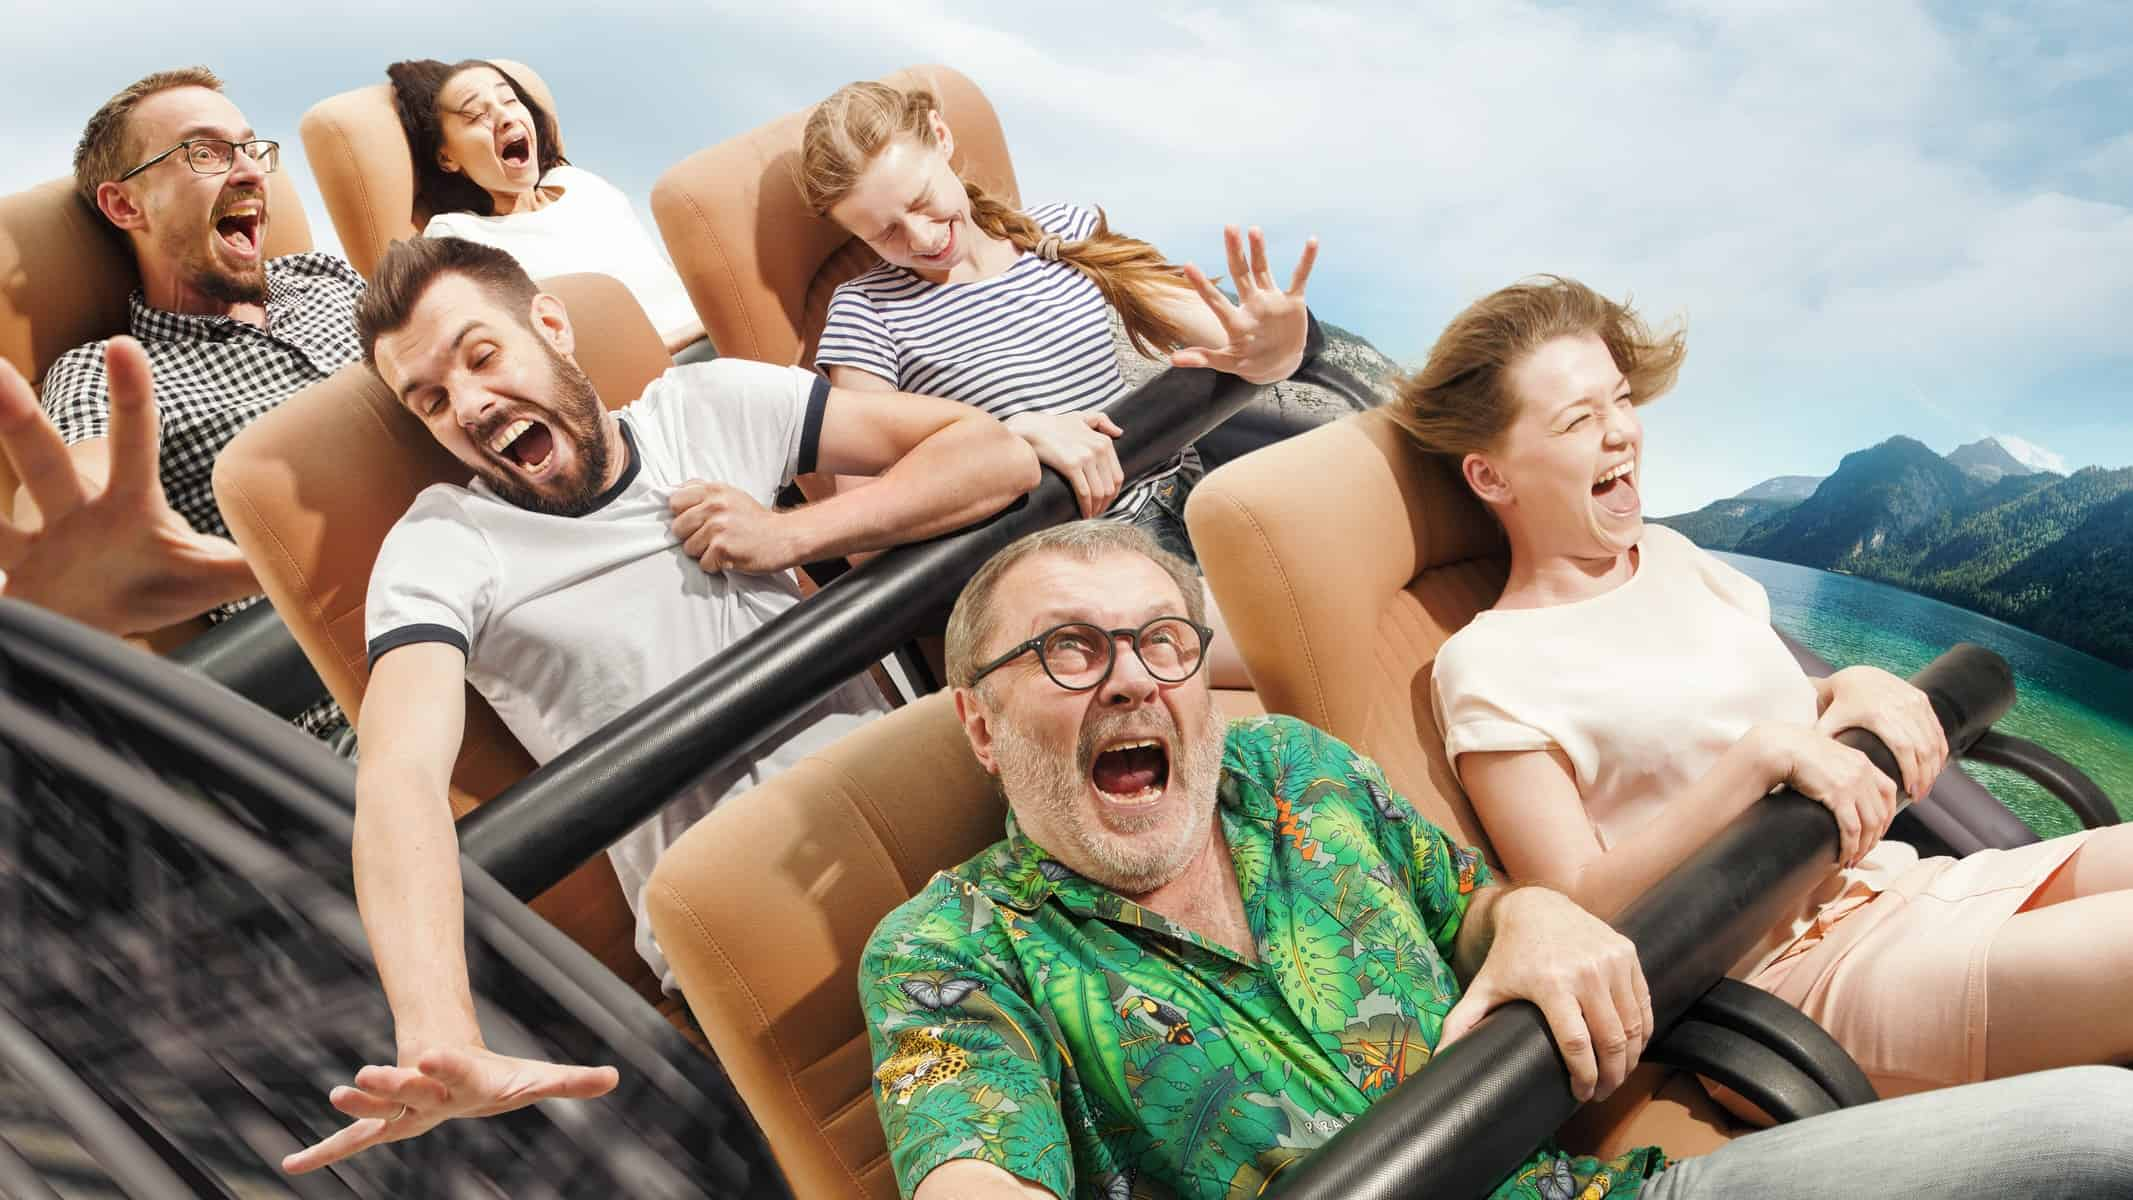 Scared people on a rollercoaster holdingon for dear life, indicating a plummeting share price